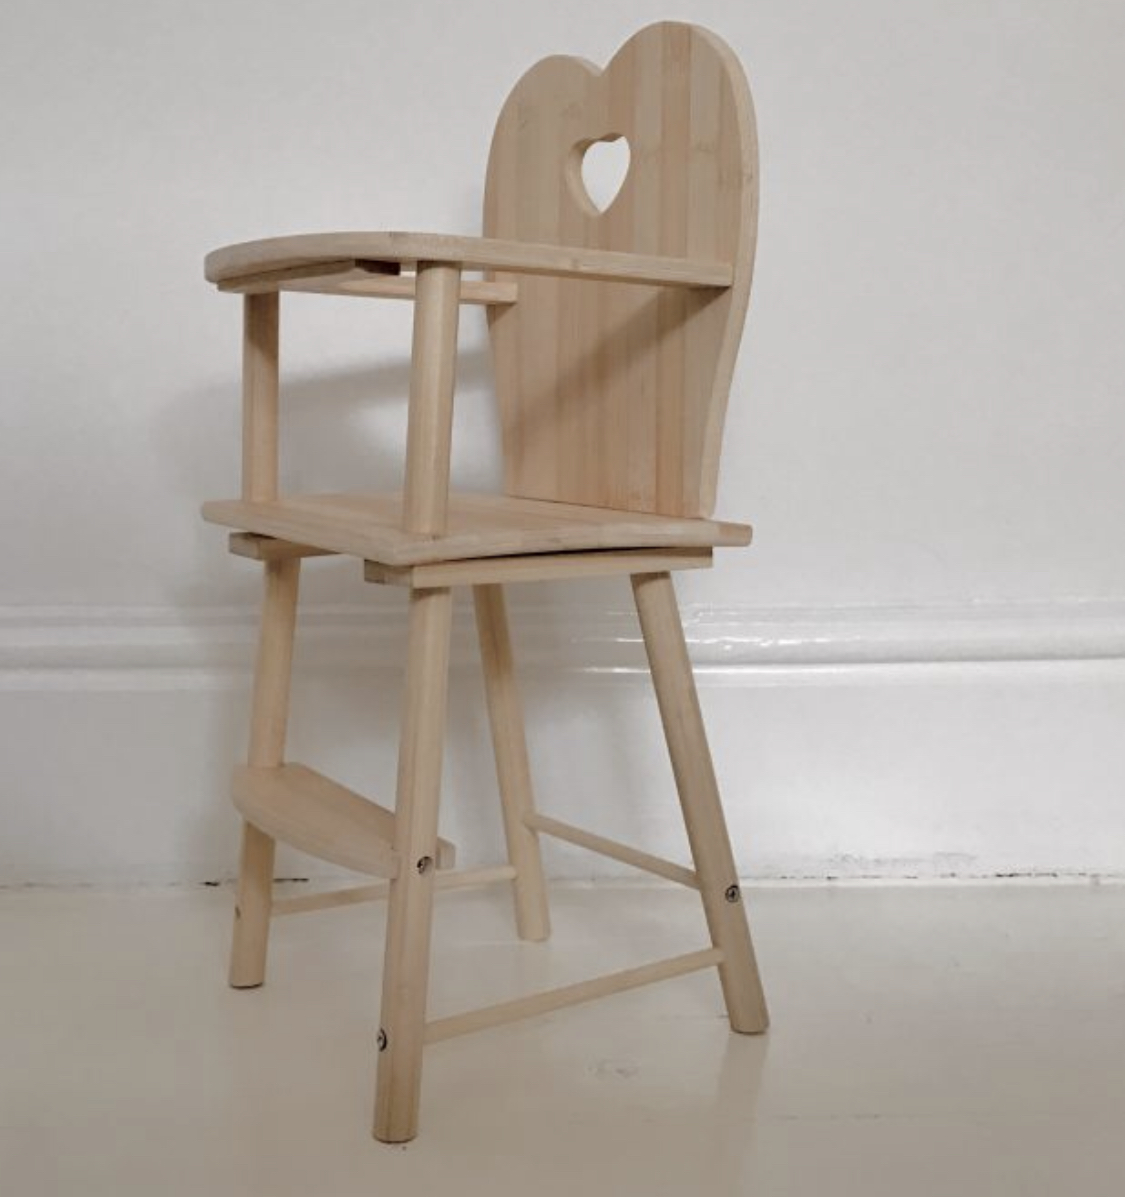 The prettiest dolls high chair. Again, one I'll be ordering for my own little one, it's the nicest dolls high chair I've seen.    https://www.thetipi.co.uk/product/natural-wooden-highchair-for-dolly/